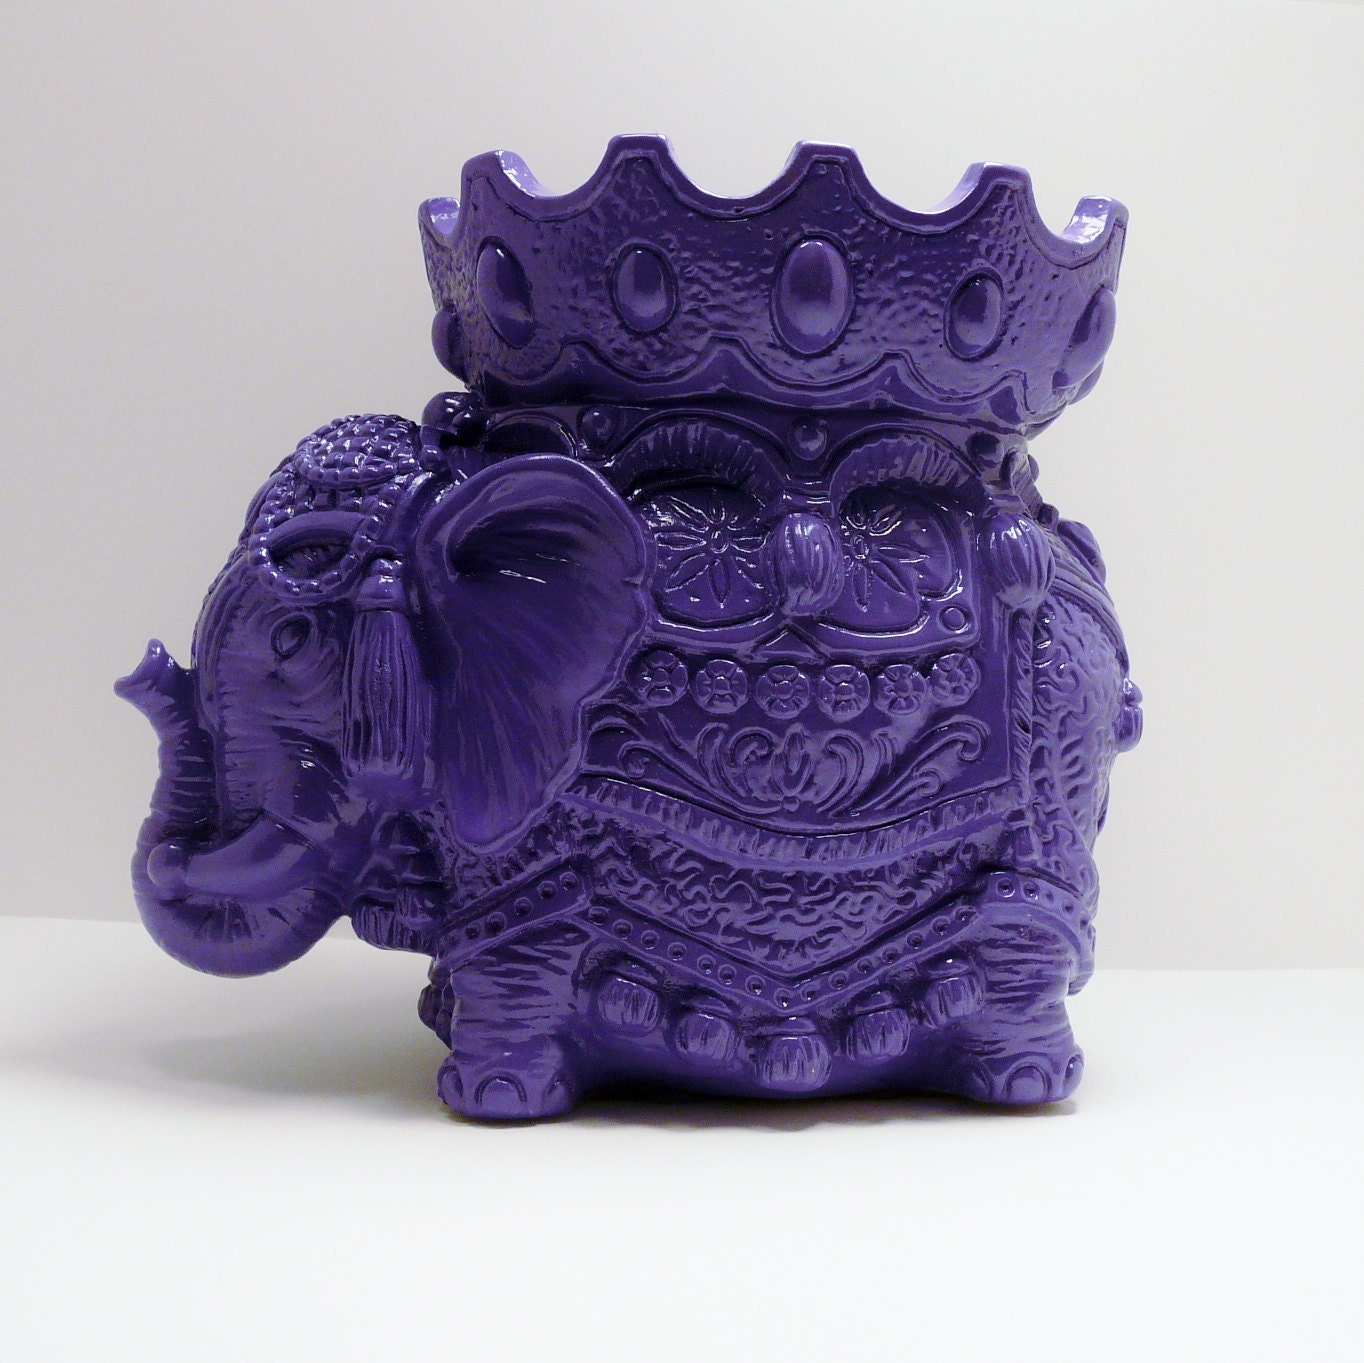 Bohemian Elephant Figurine Purple Home Decor By Nashpop